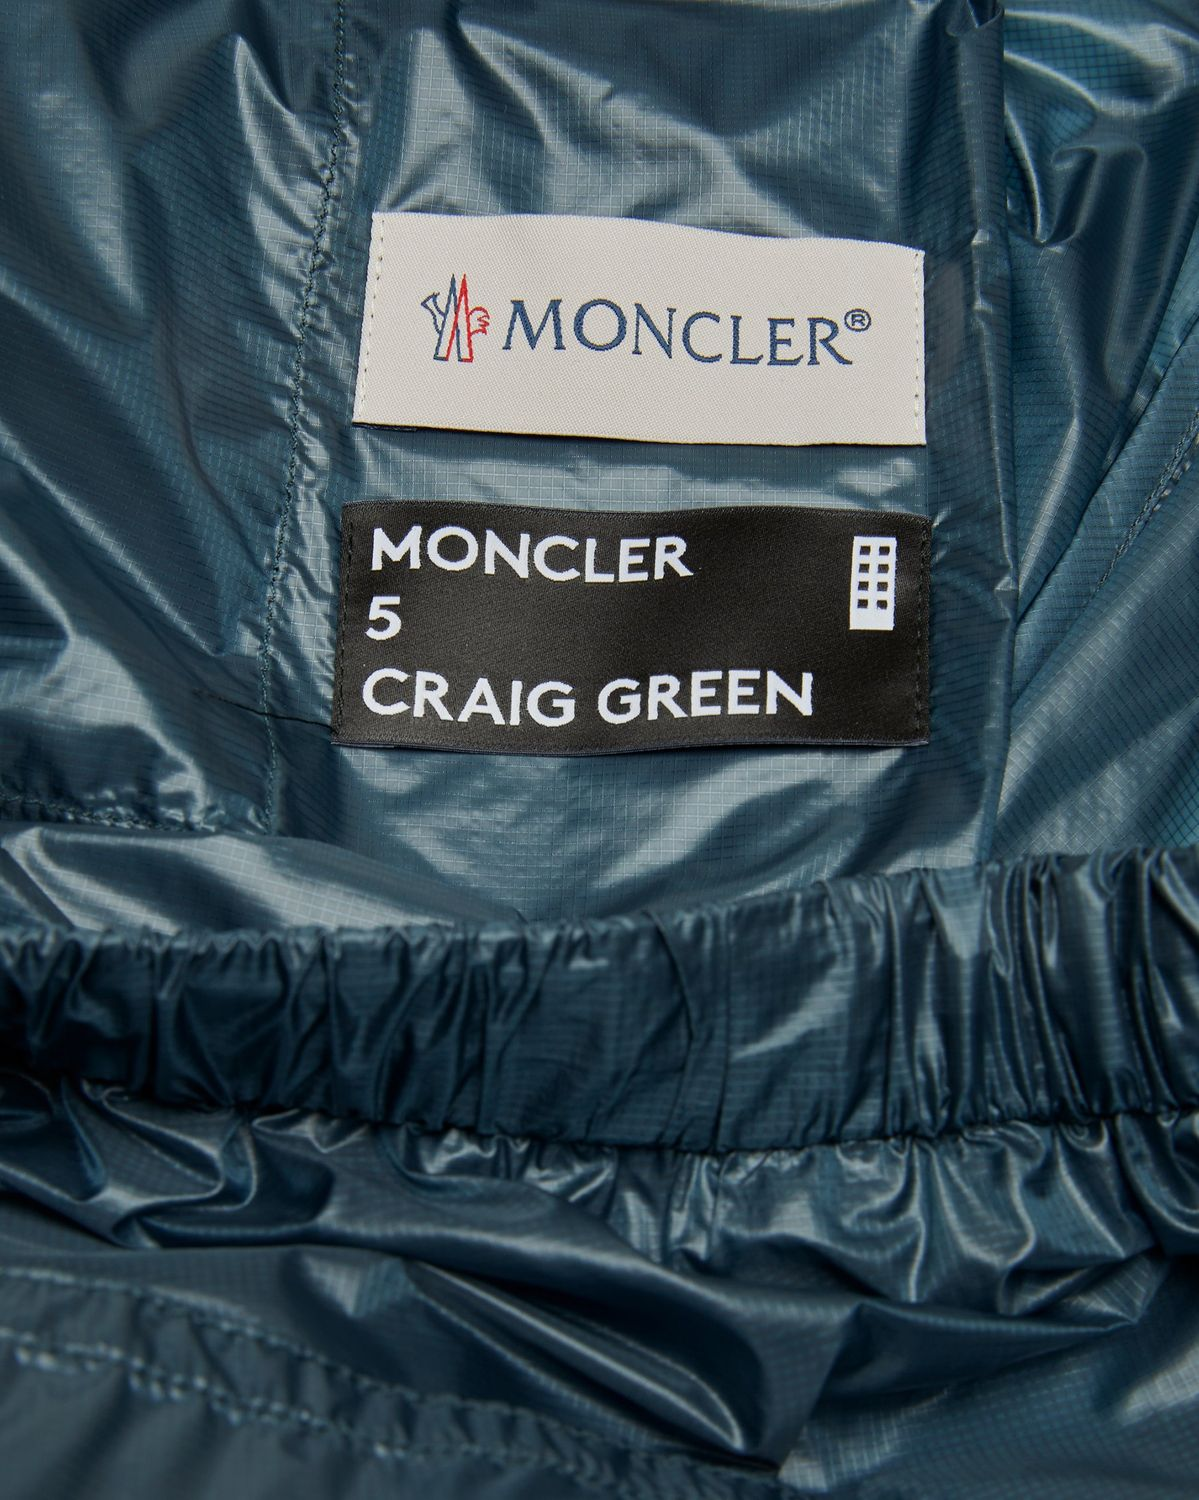 5 Moncler Craig Green — Trousers Grey/Blue - Image 4